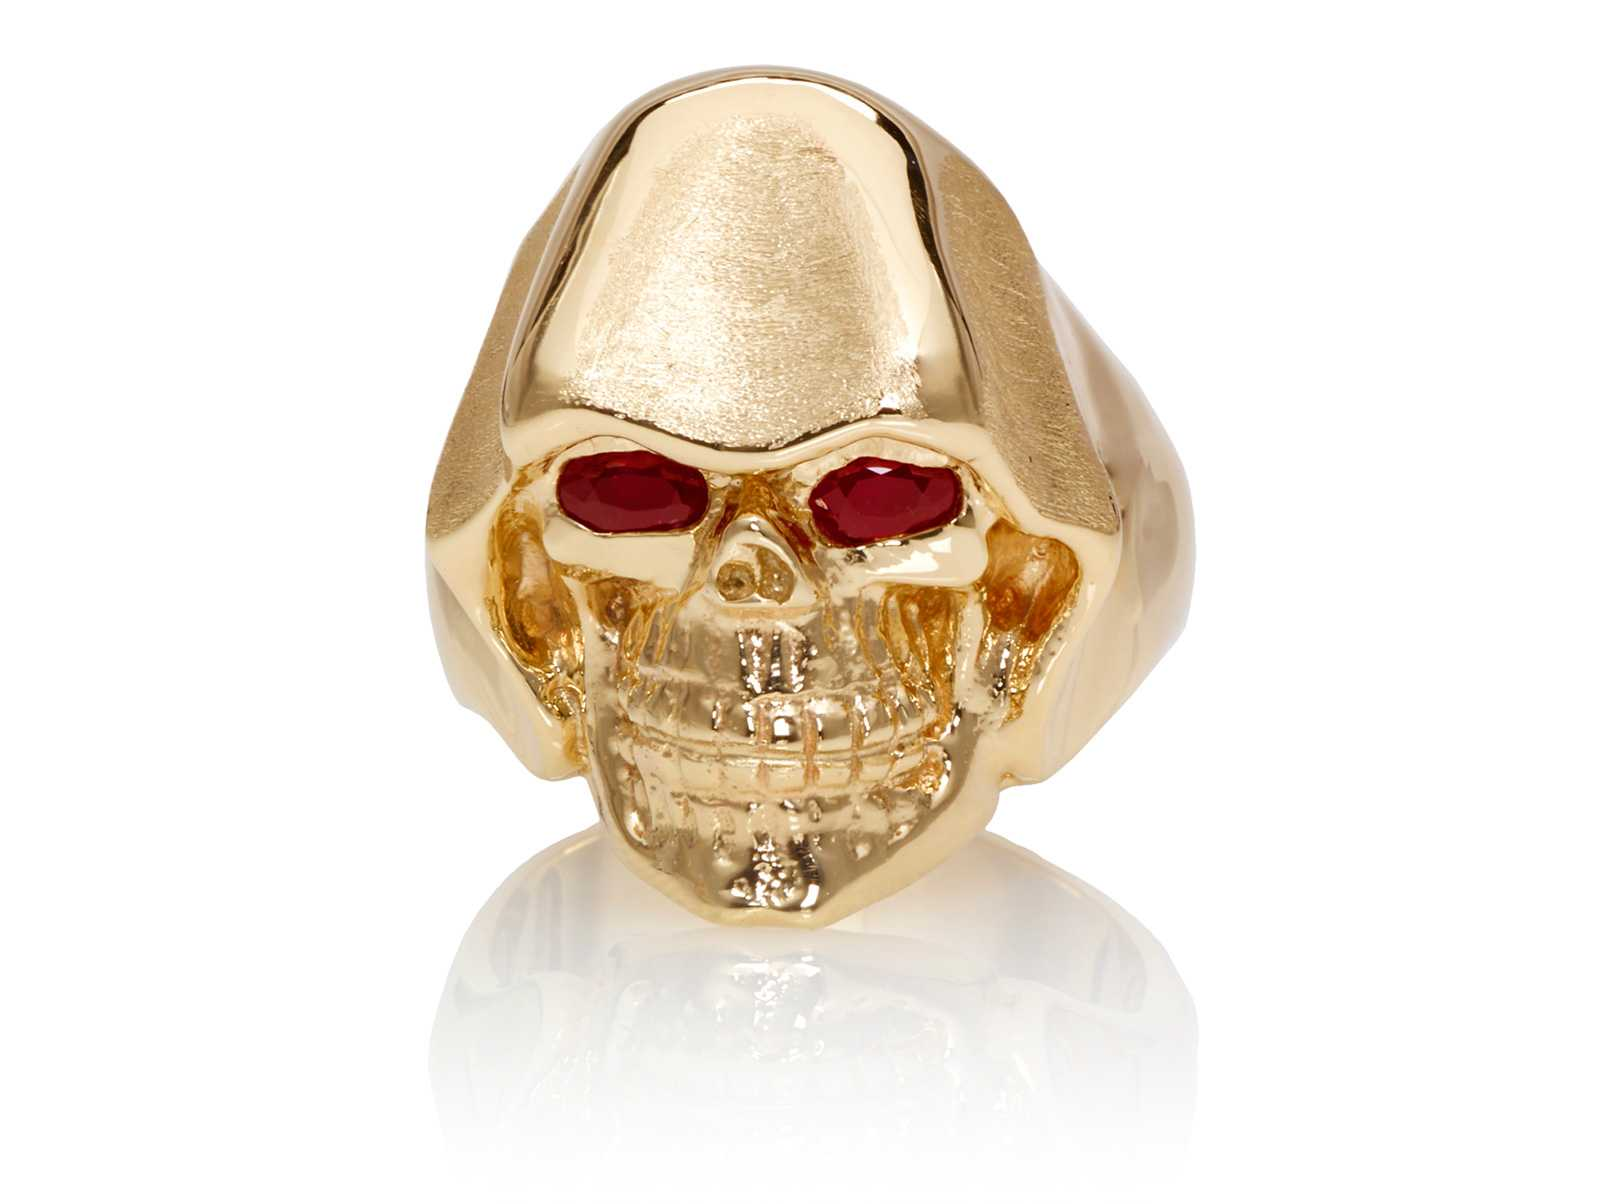 RG5010-A The Reaper Is In Skull Ring (Front View) Yellow with Rose Gold, with Red Rubies, designed by Steve Soffa